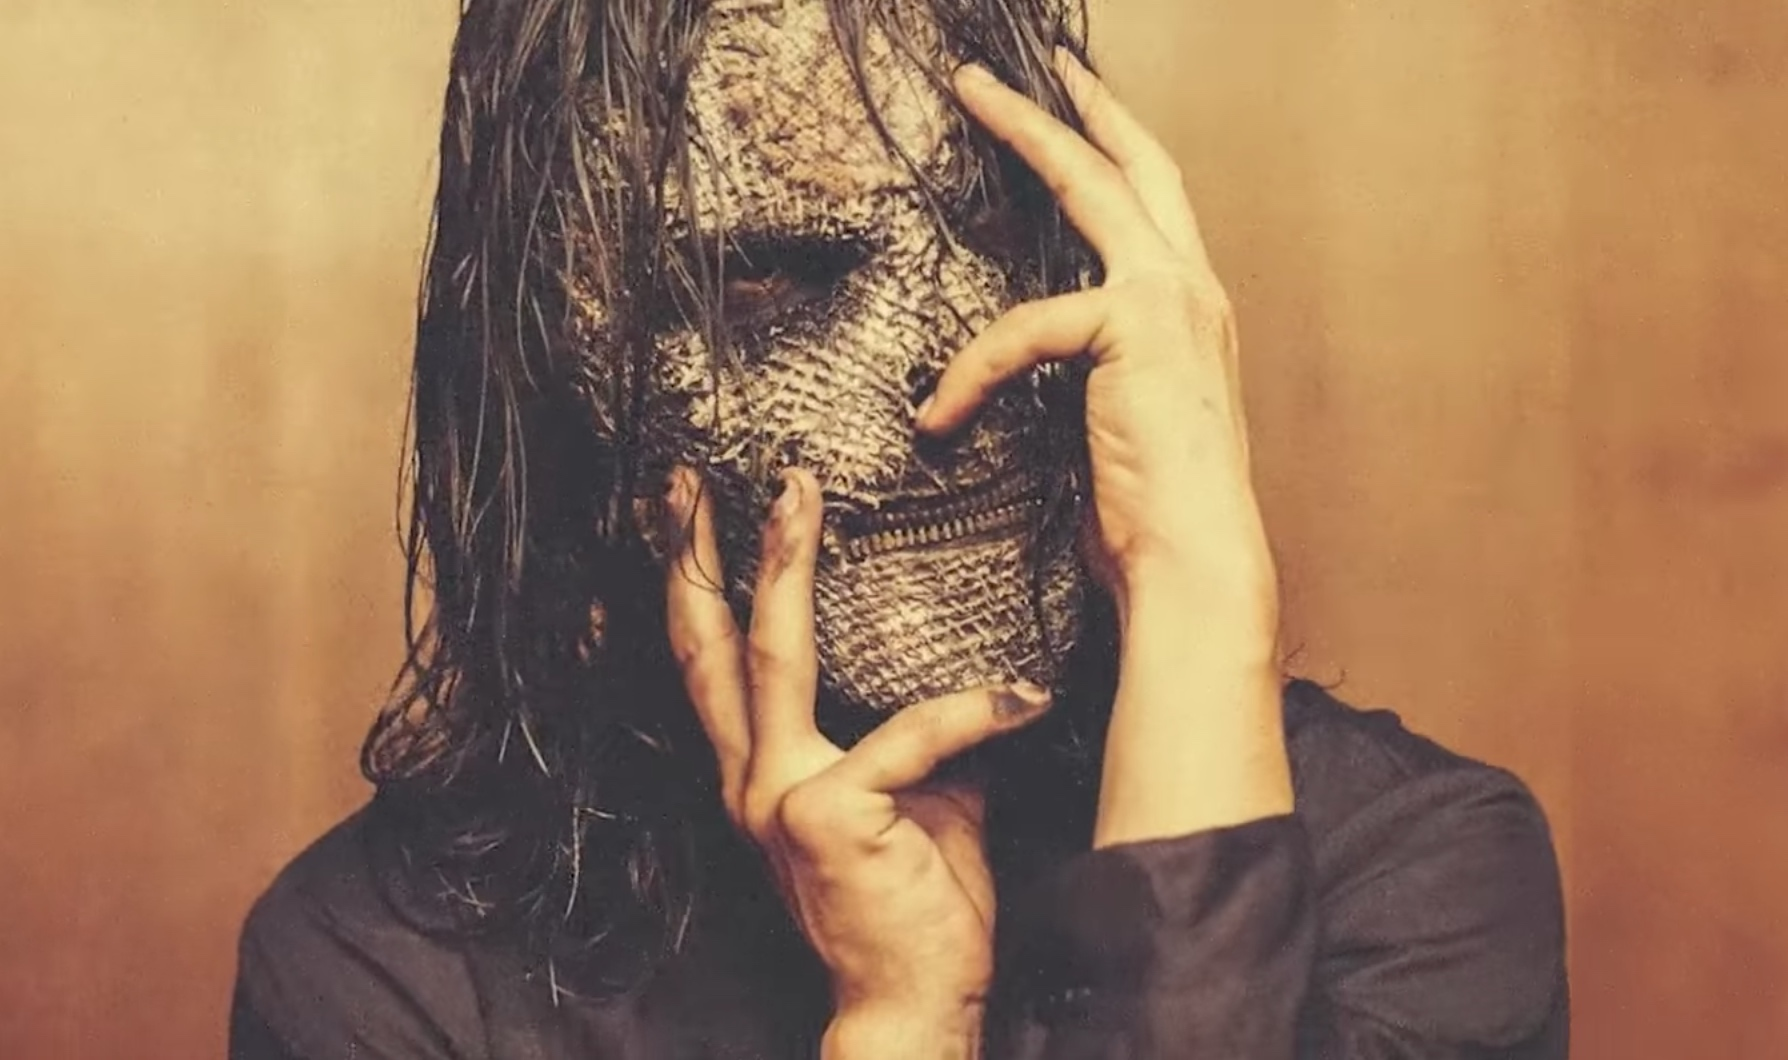 During stage performances, the members of the band Slipknot wear custom-designed facemasks like the one shown above. Source: YouTube/Slipknot